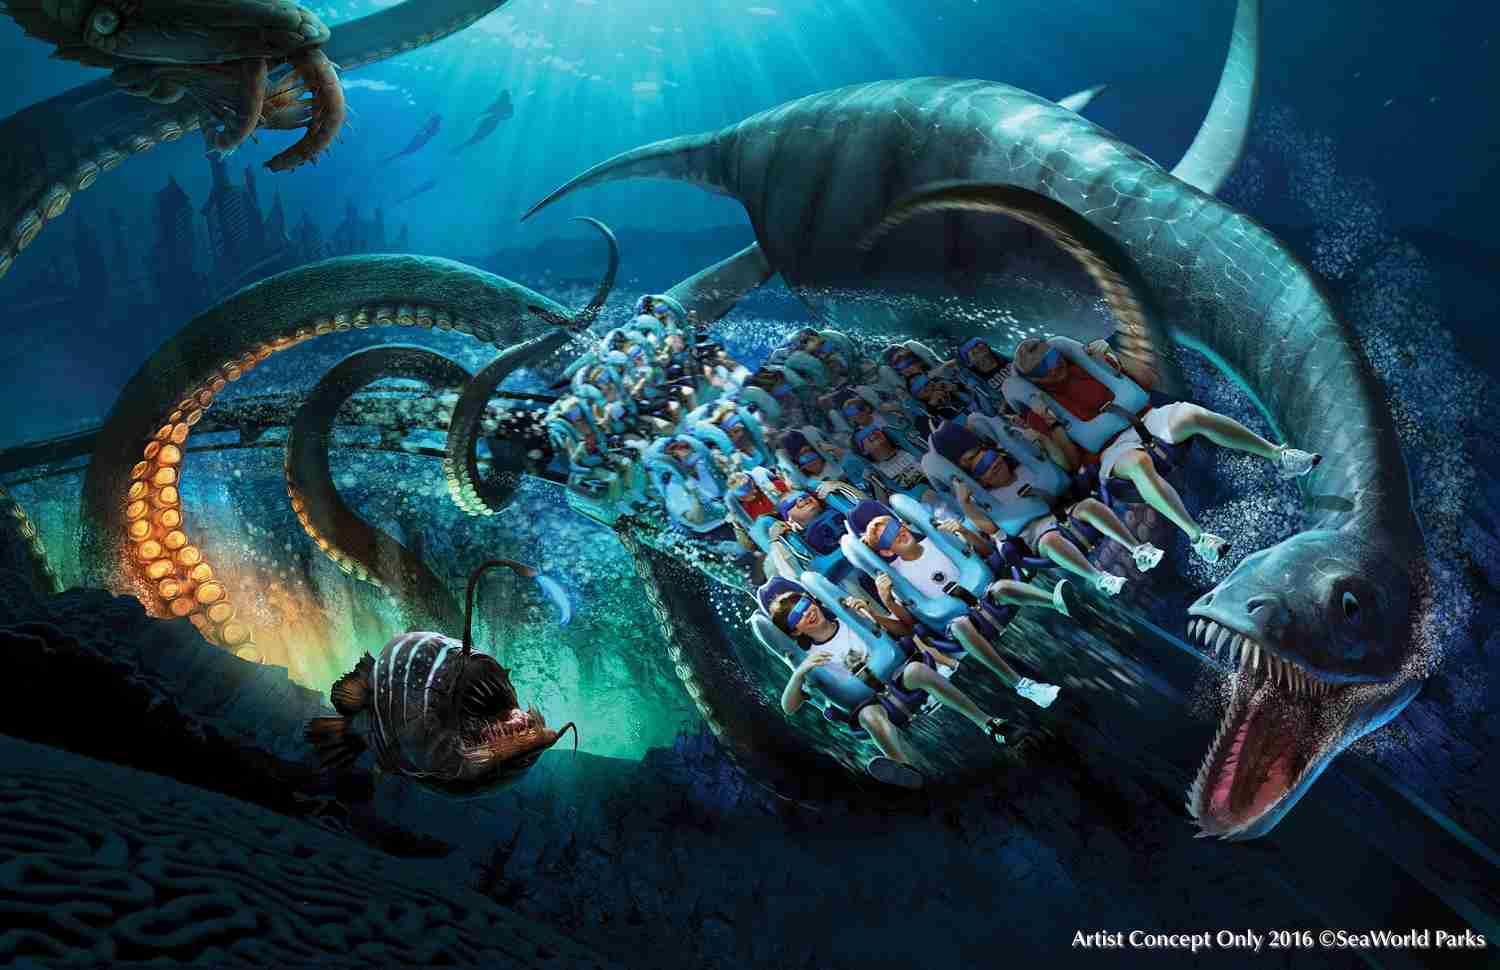 Seaworld Entertainment Incorporated (NYSE:SEAS) Stock Is Shorted Less